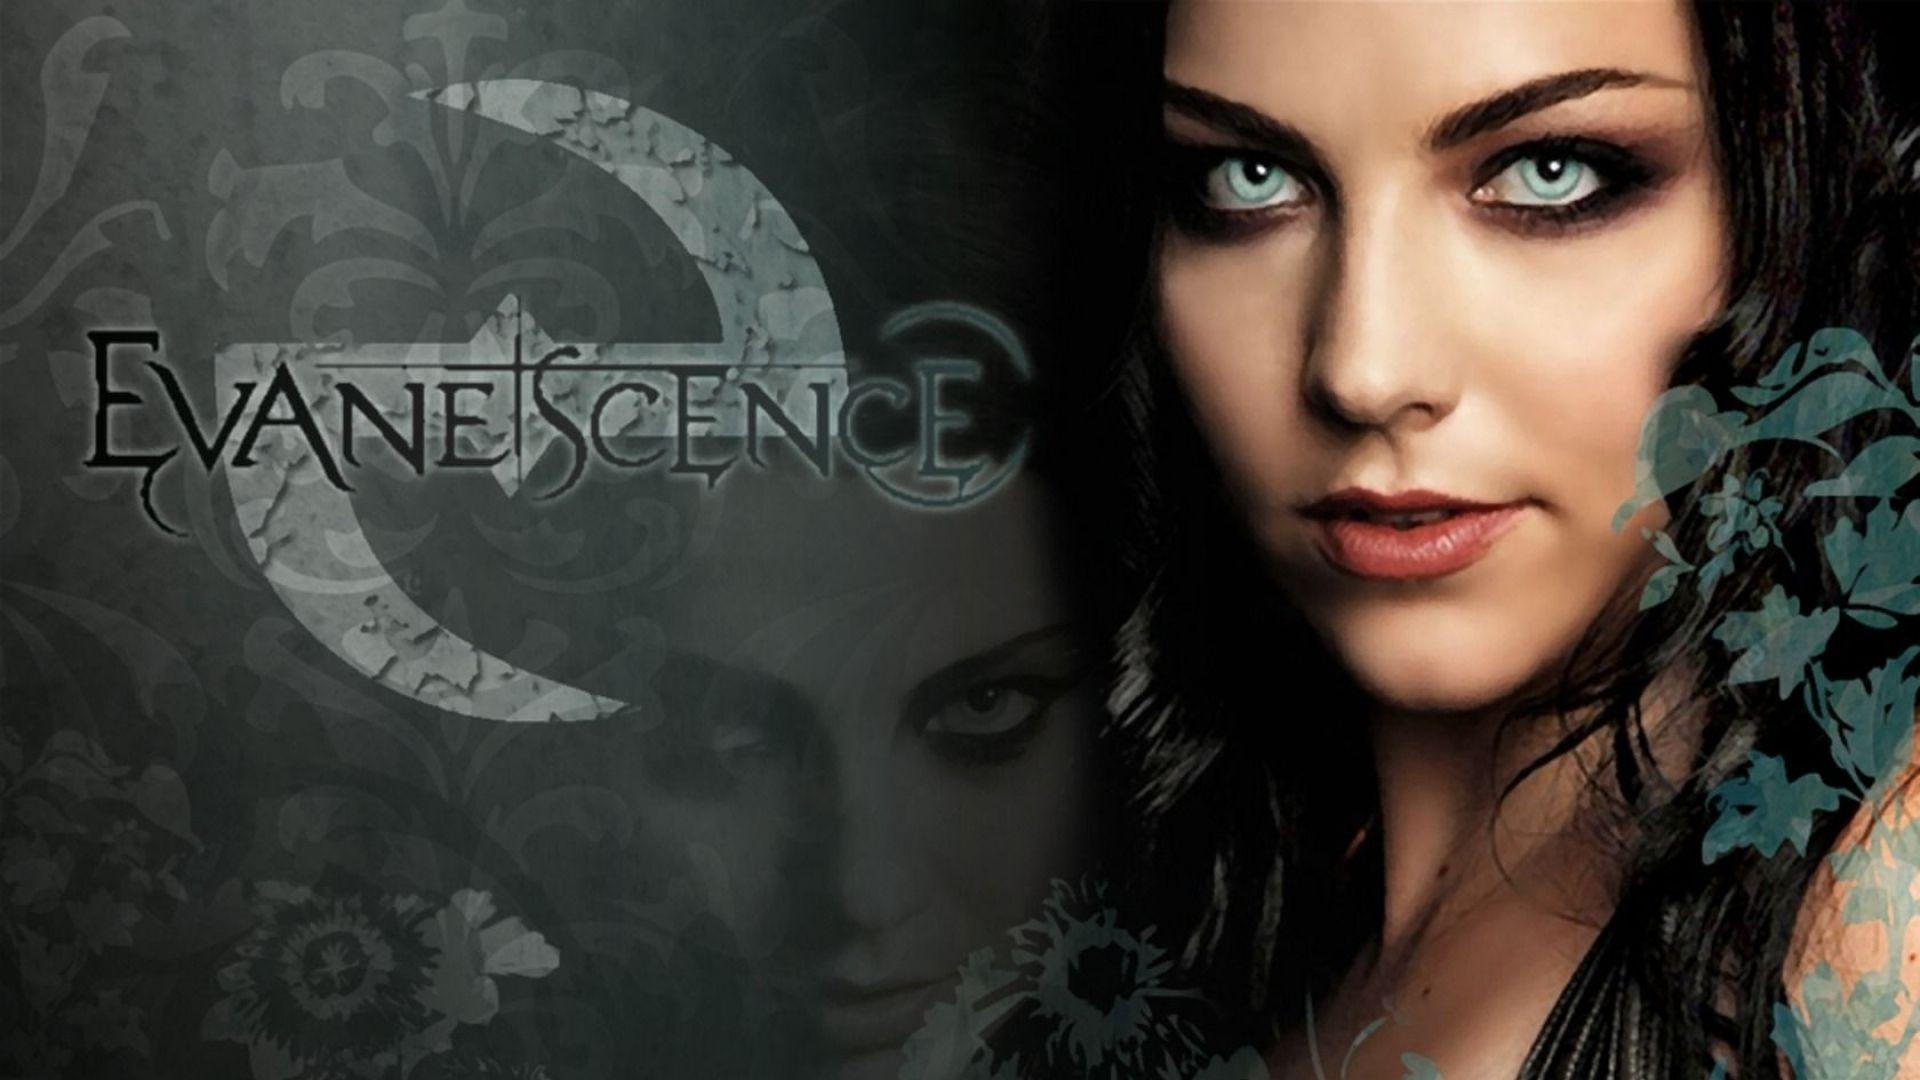 Evanescence Wallpapers 2016 1920x1080